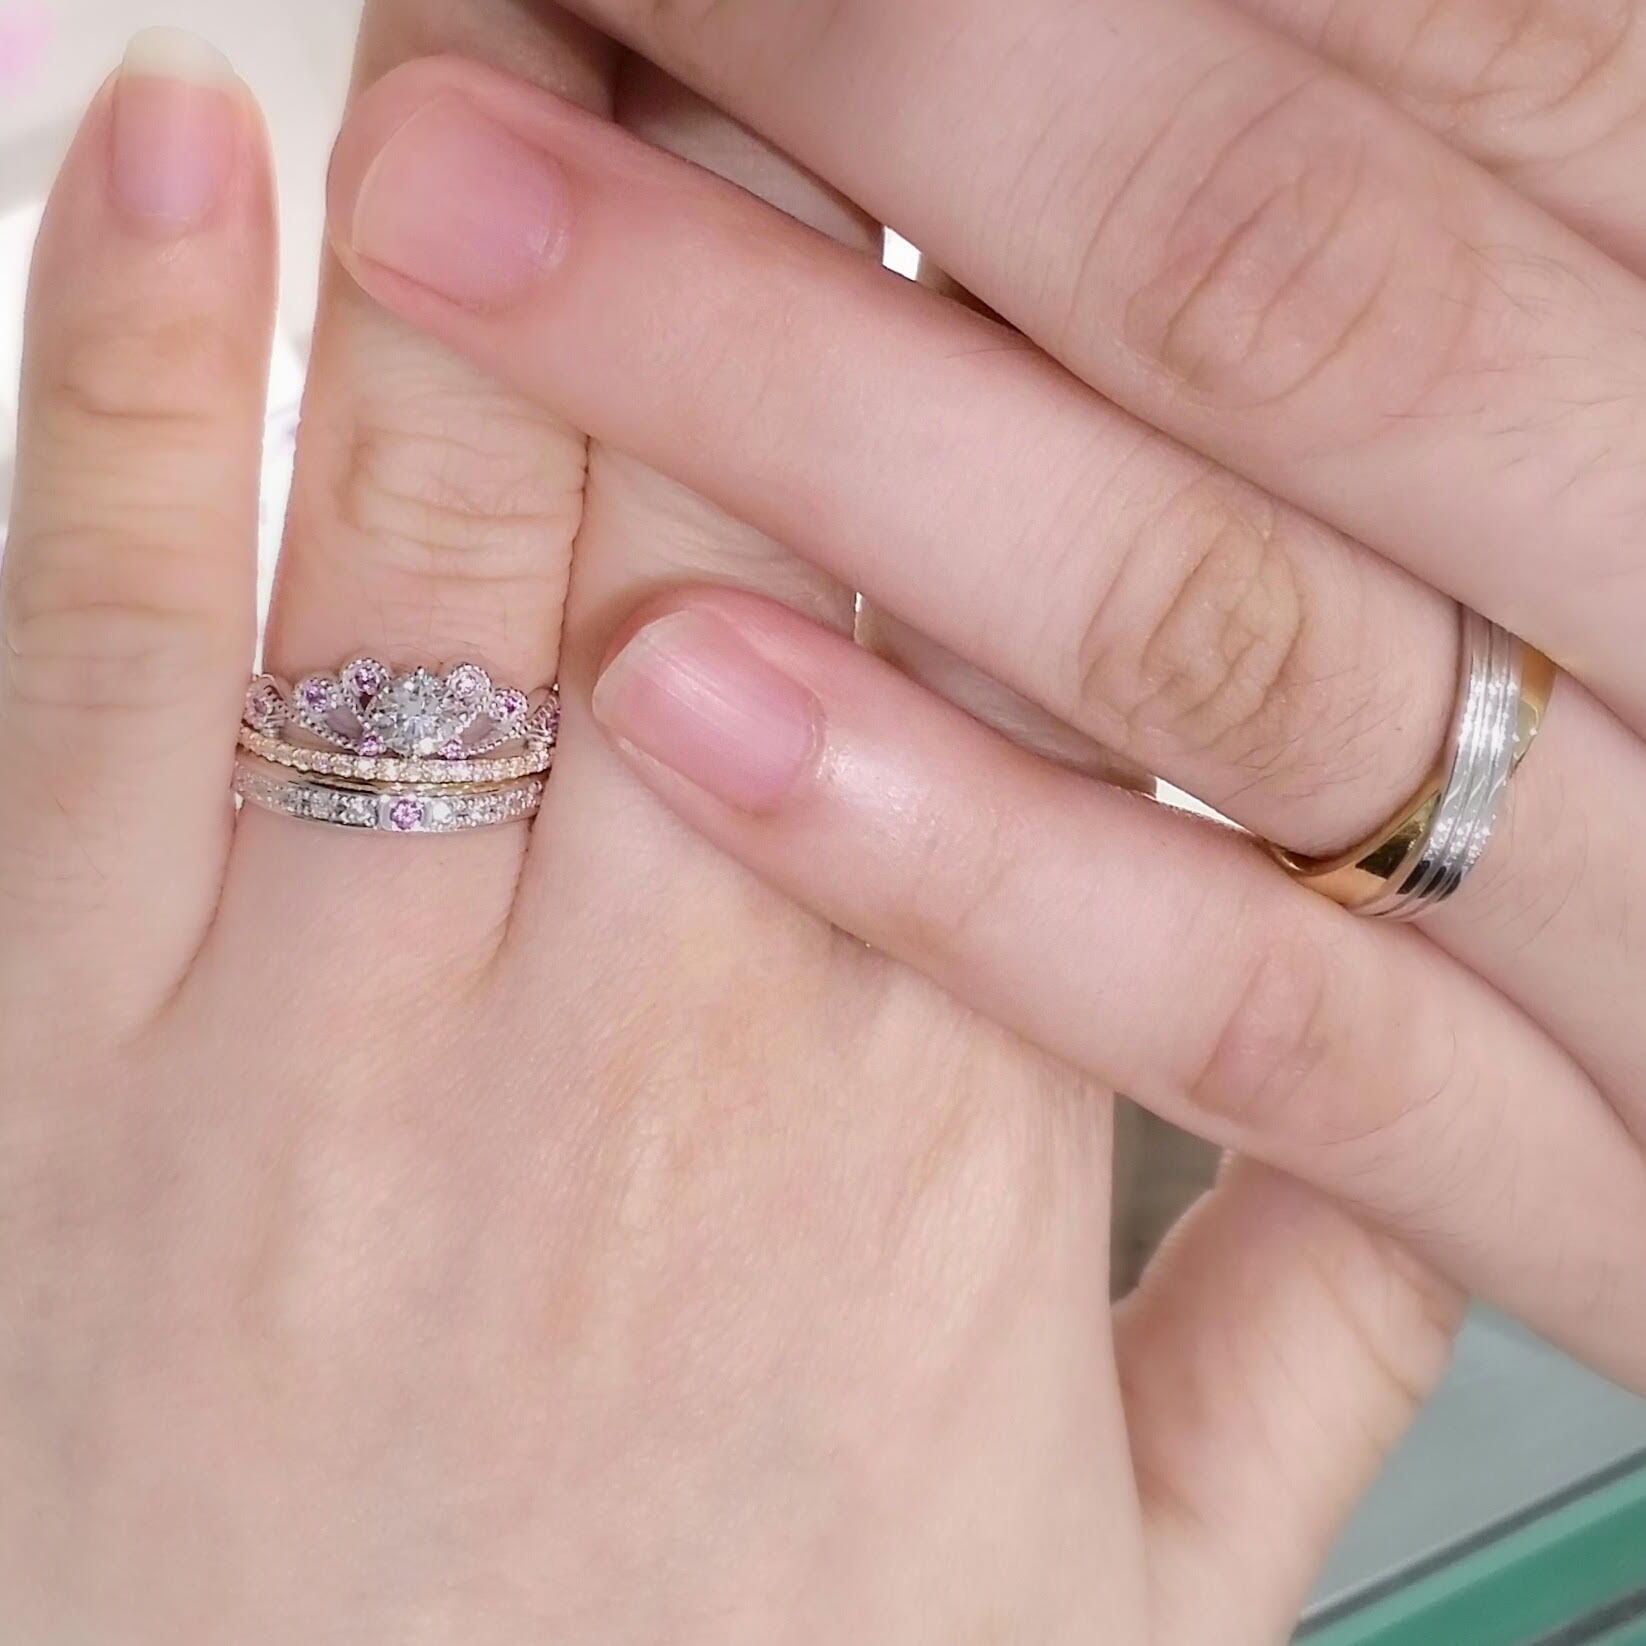 Amazing Build A Wedding Ring | Wedding